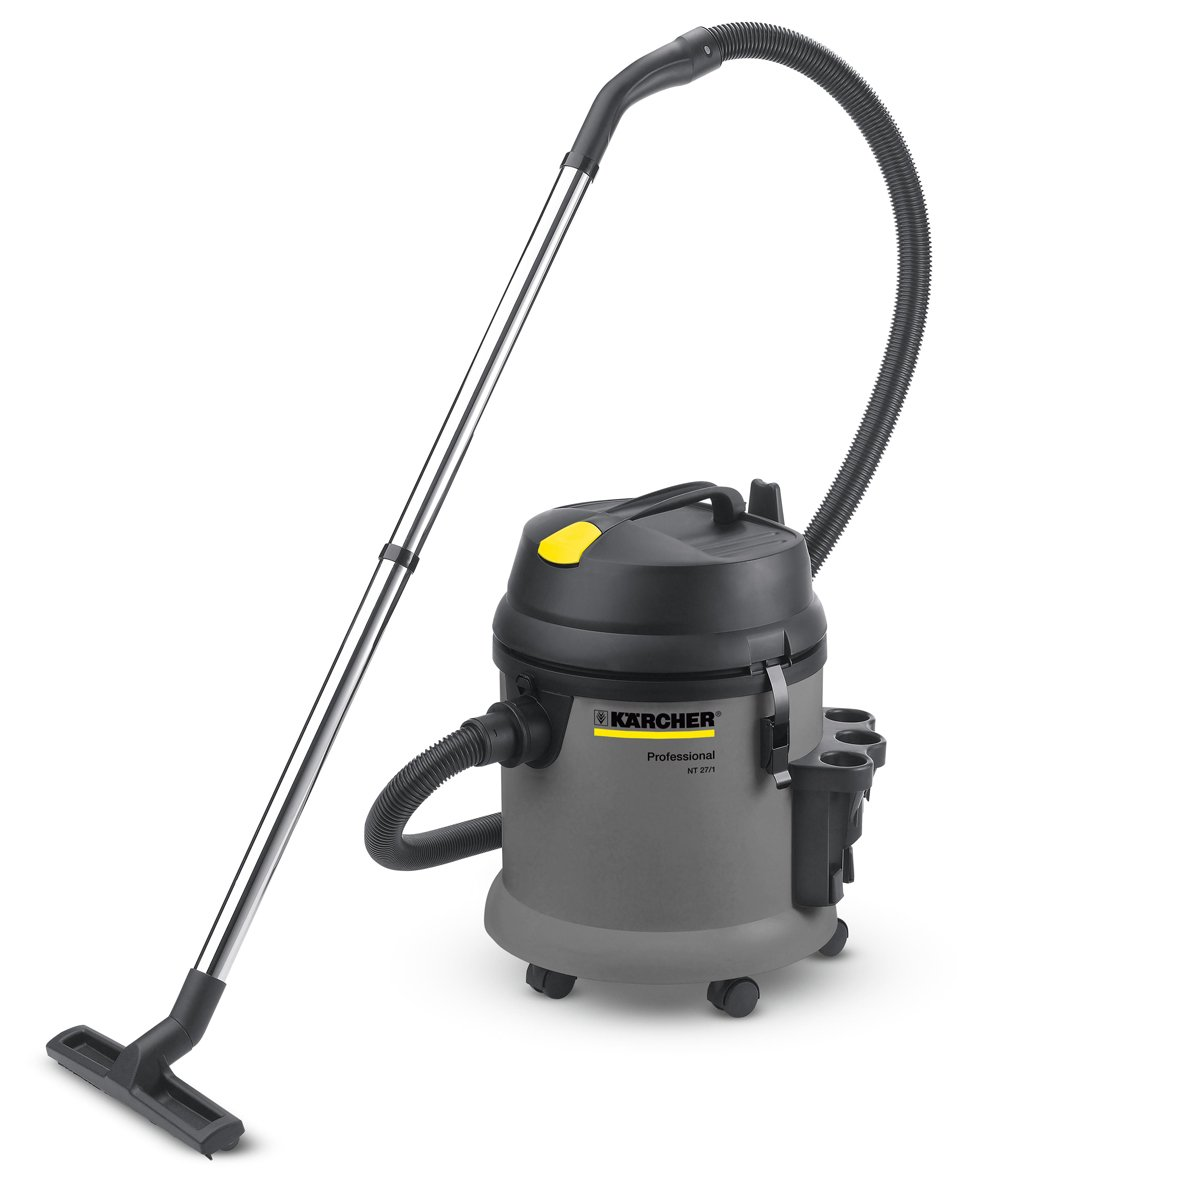 Karcher NT 27/1 Pro All Purpose Commercial Wet & Dry Vacuum Cleaner - 27L, 1380w, 240v